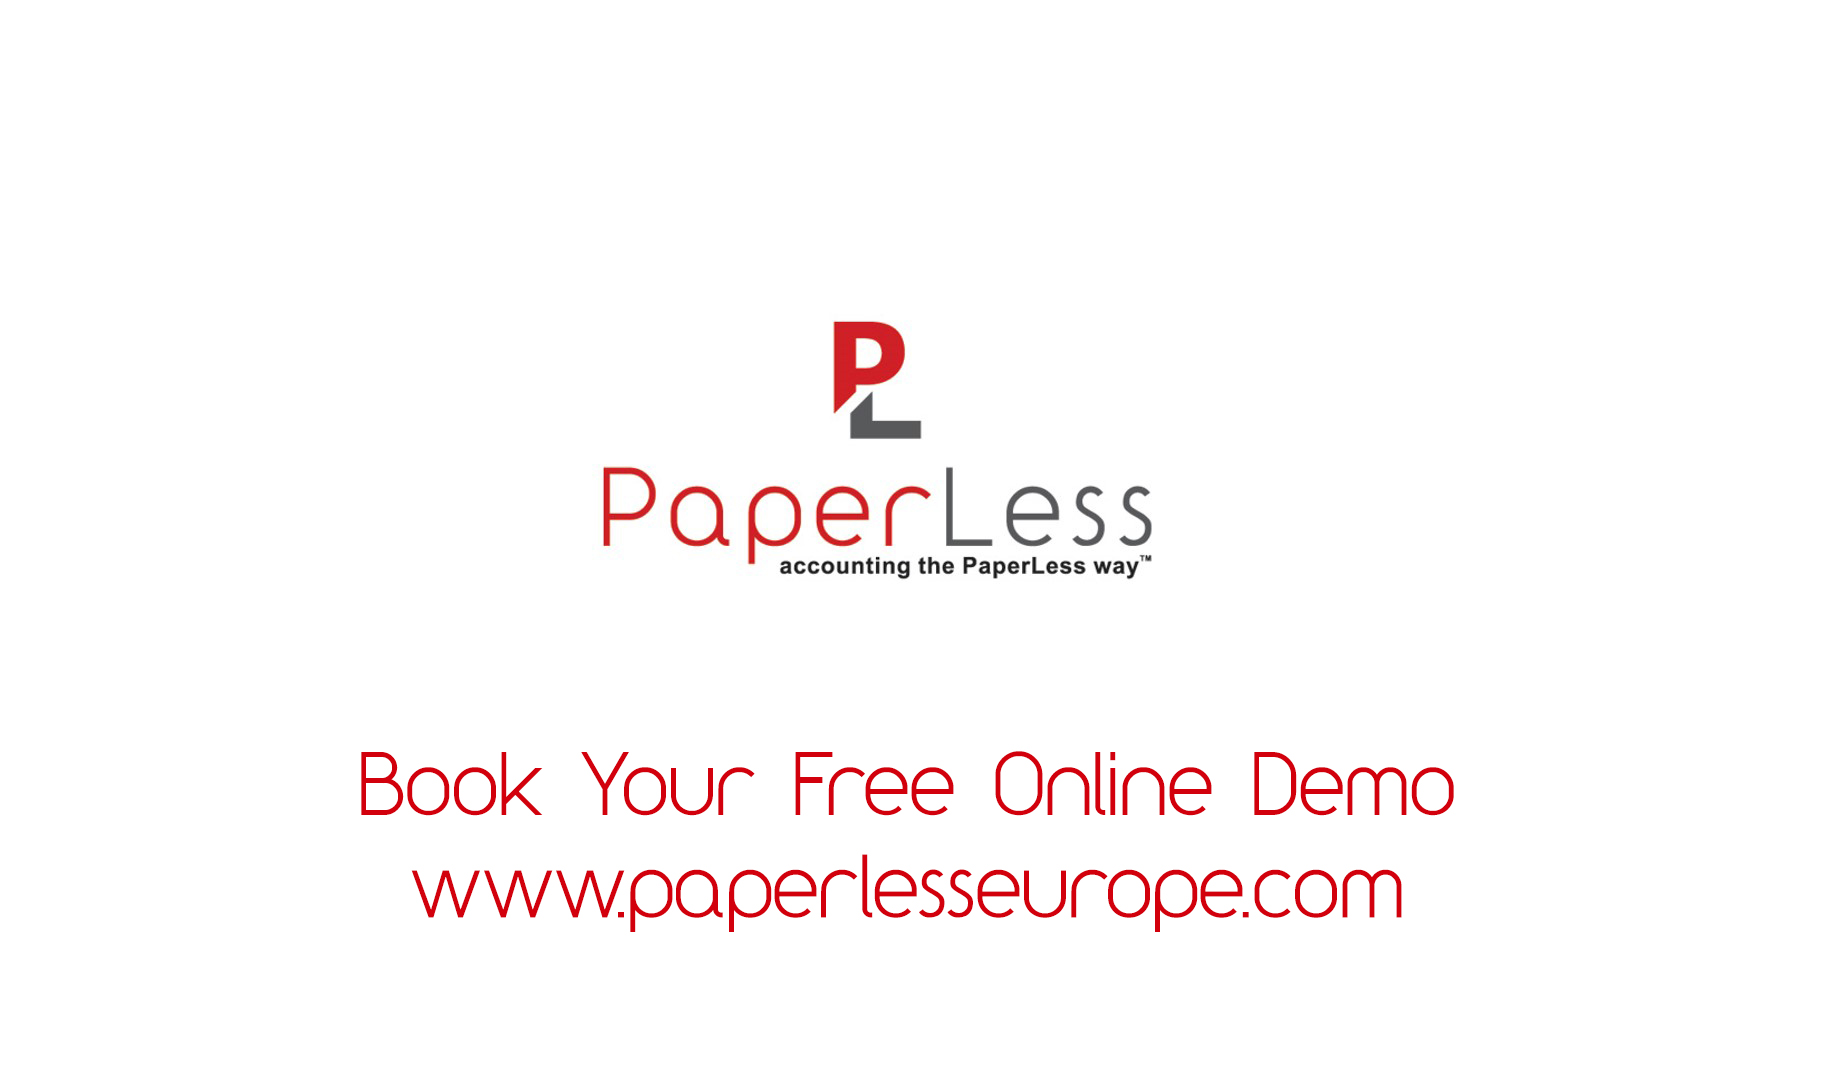 Click here to Book Your Free Online Demo of PaperLess Document Management